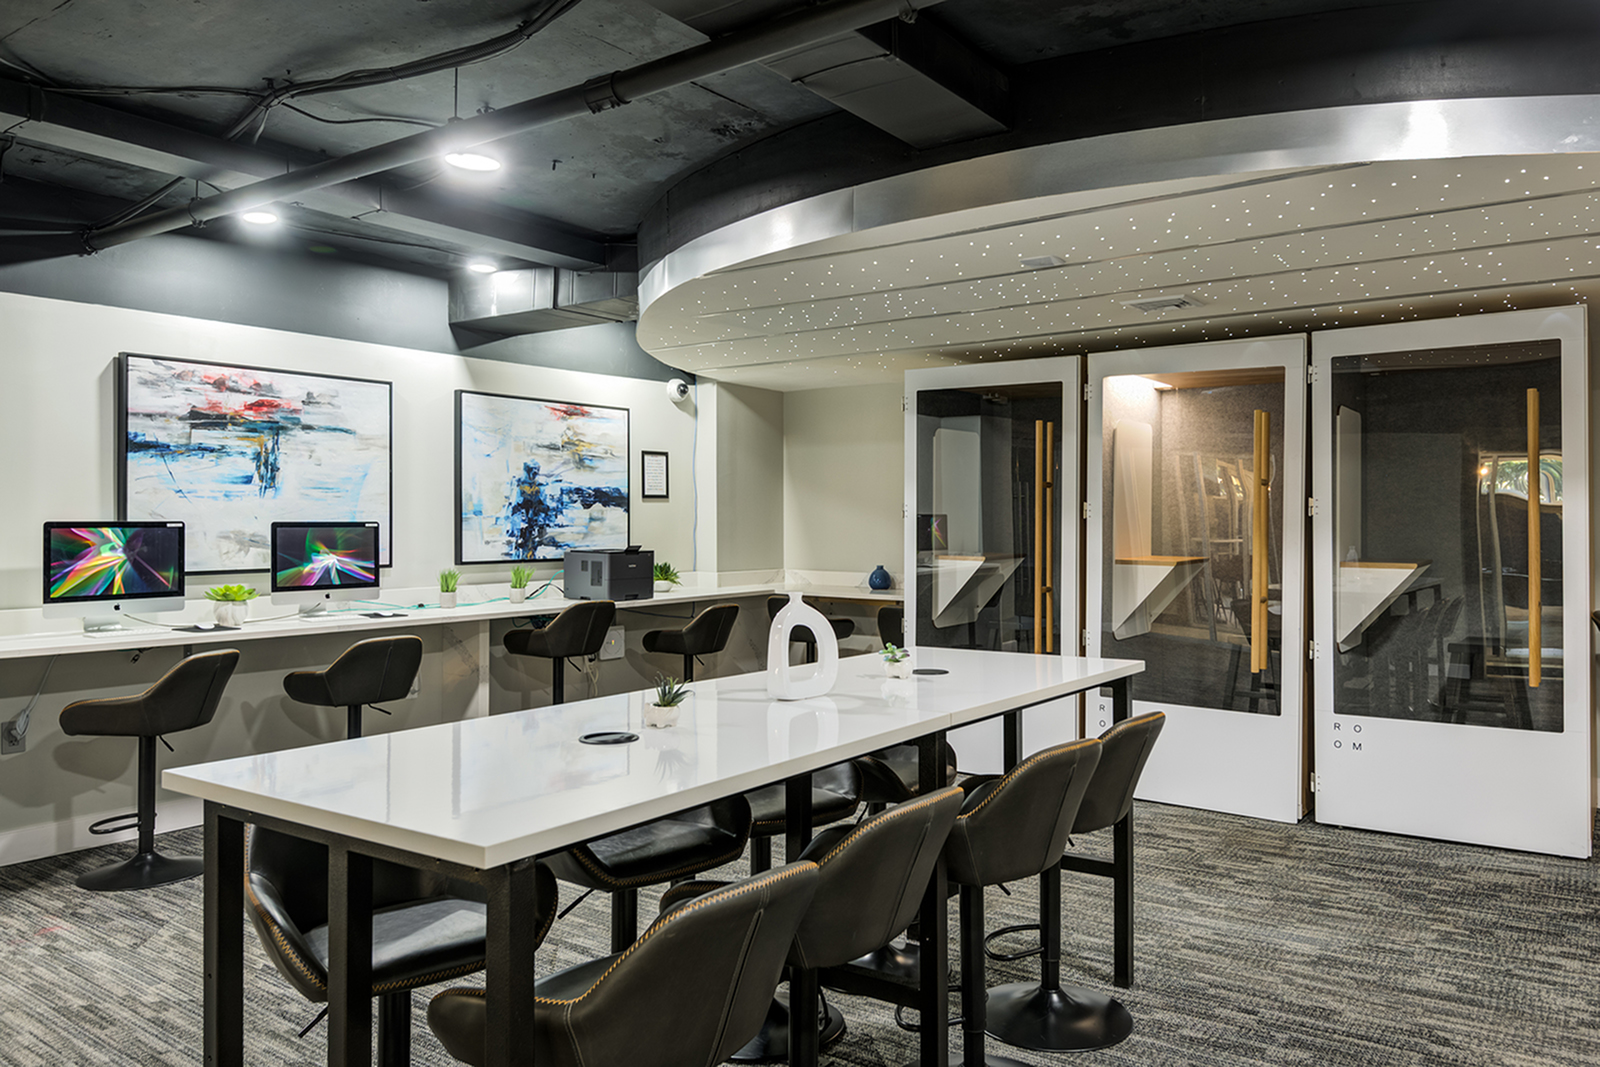 Study room with conference table and chairs